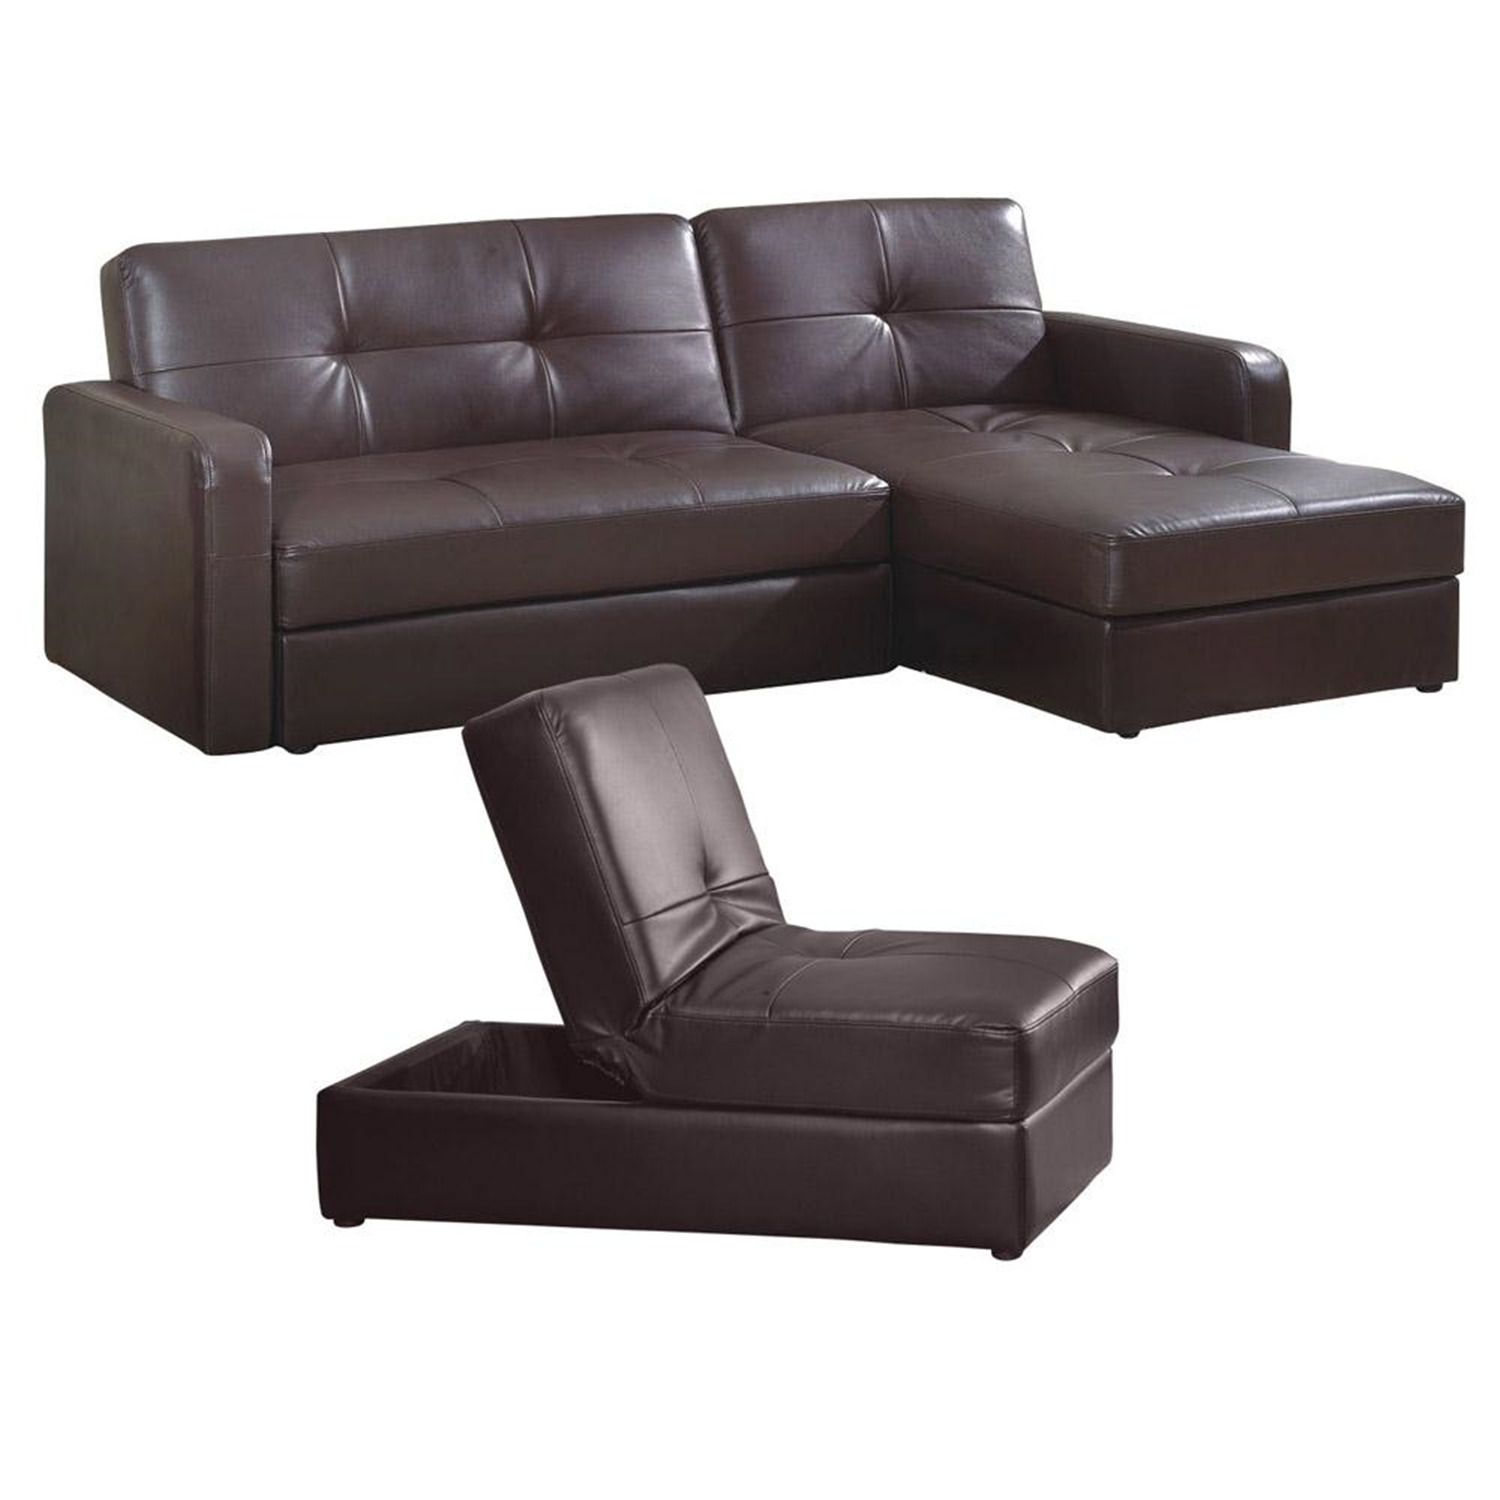 ORE International R8117BRN37 Leather Sofa Bed Set With Storage